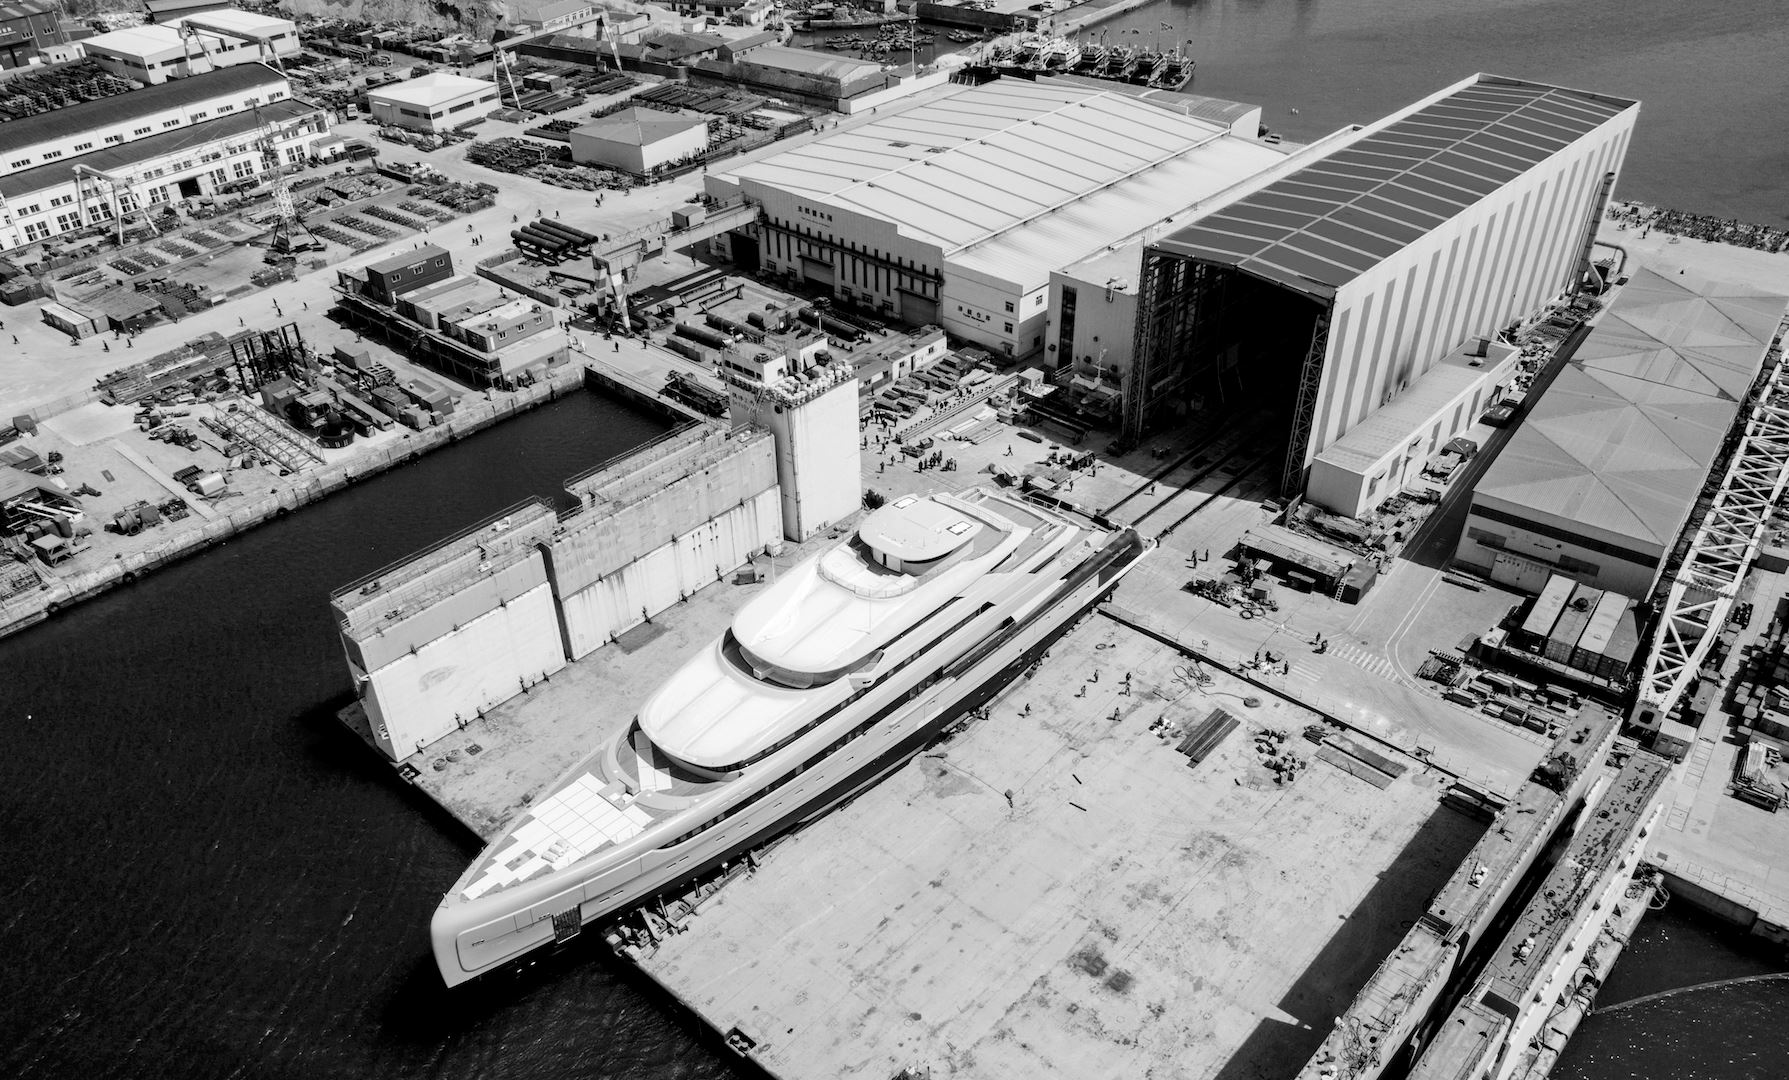 PMY superyacht ILLUSION PLUS ready for launch - Credit Pride Mega Yachts